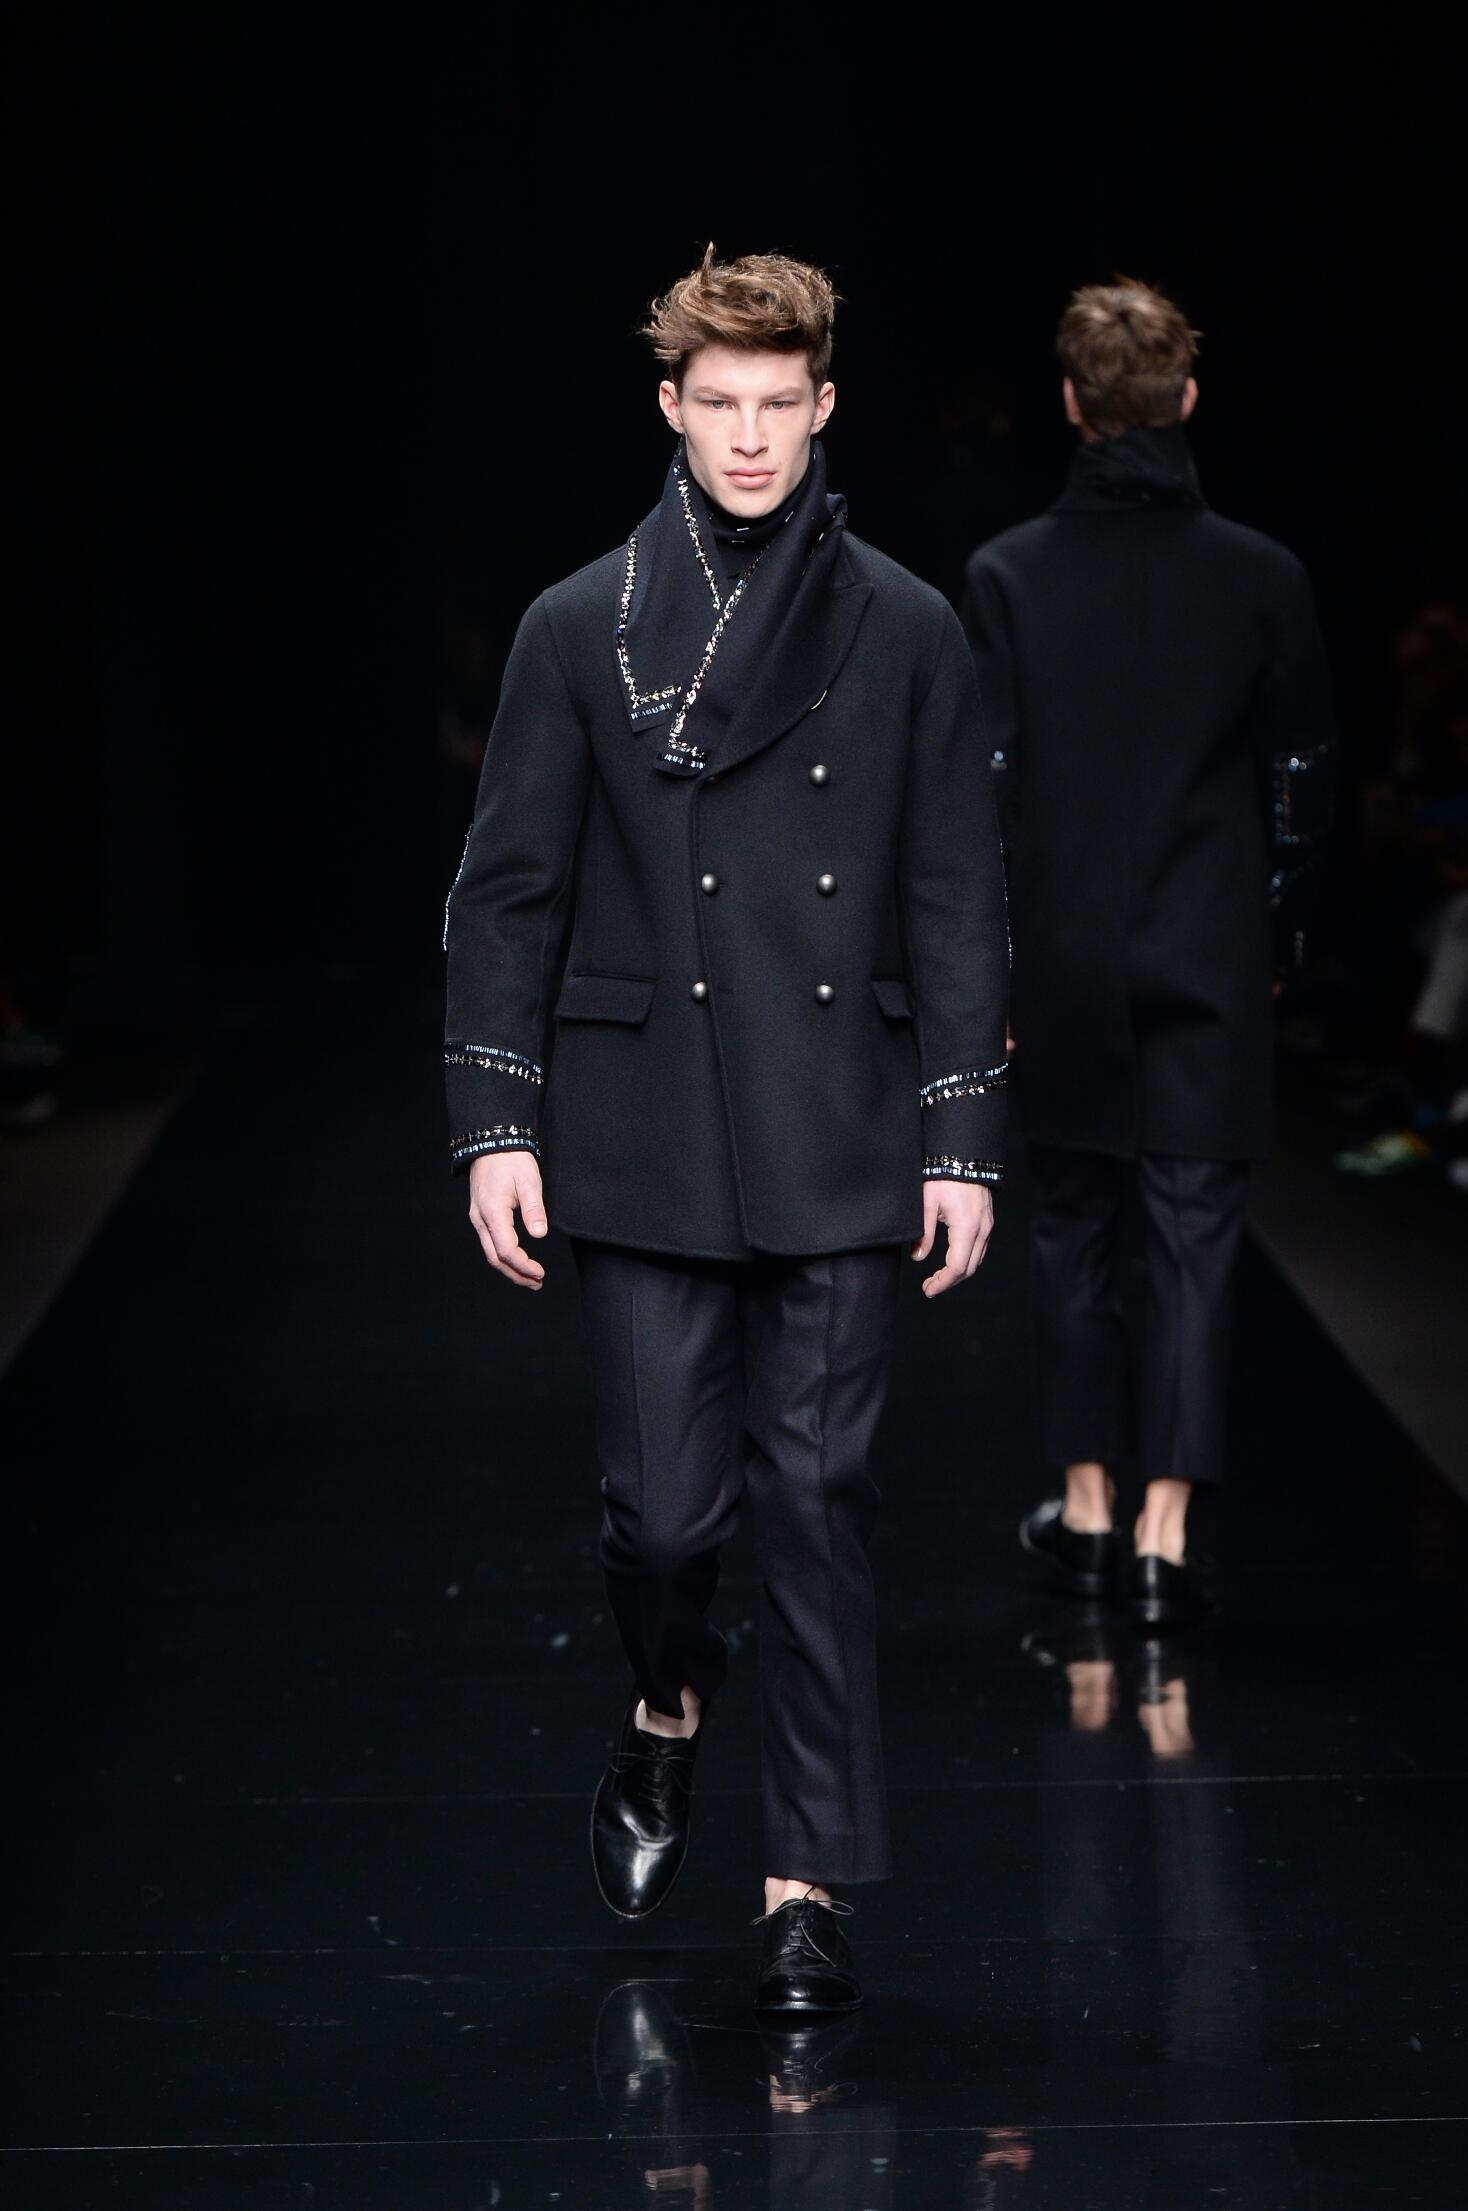 Fashion Winter Trends 2015 2016 Ermanno Scervino